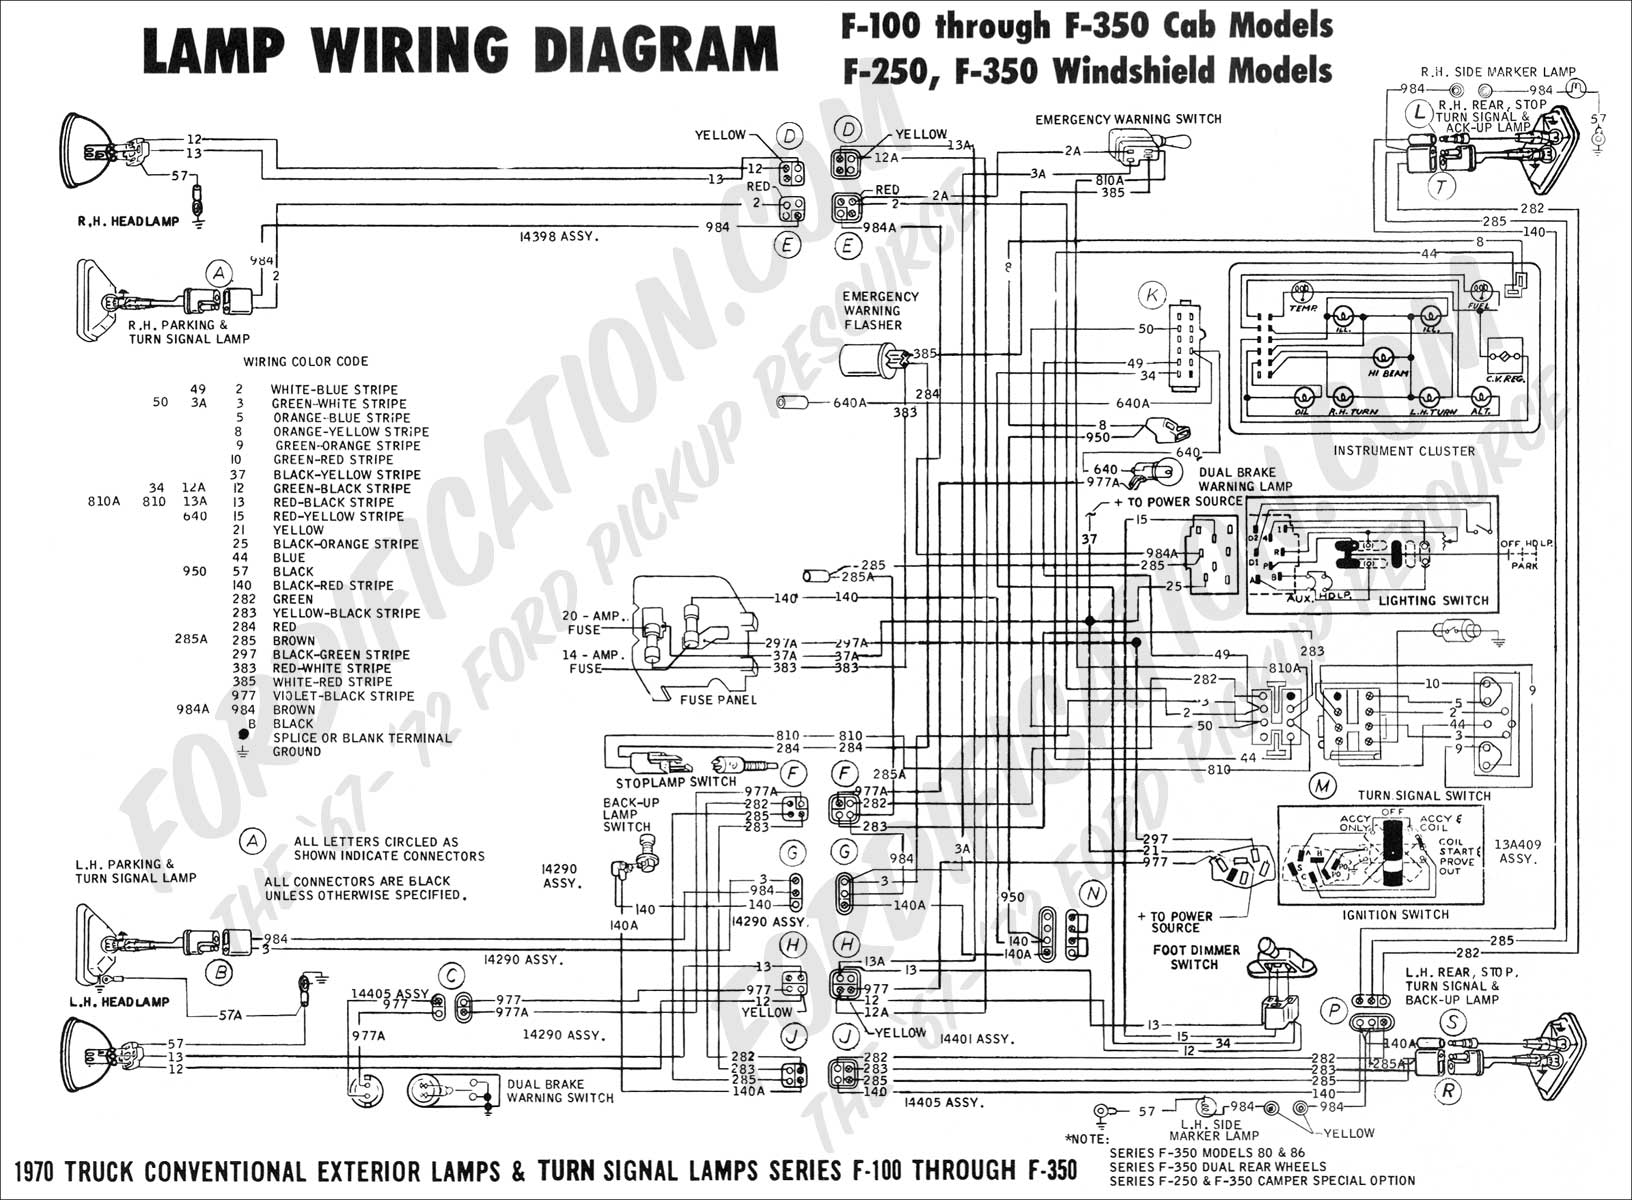 wiring diagram_70ext lights01 ford f250 wiring diagram online f250 trailer wiring diagram 2015 ford f150 trailer wiring diagram at gsmx.co